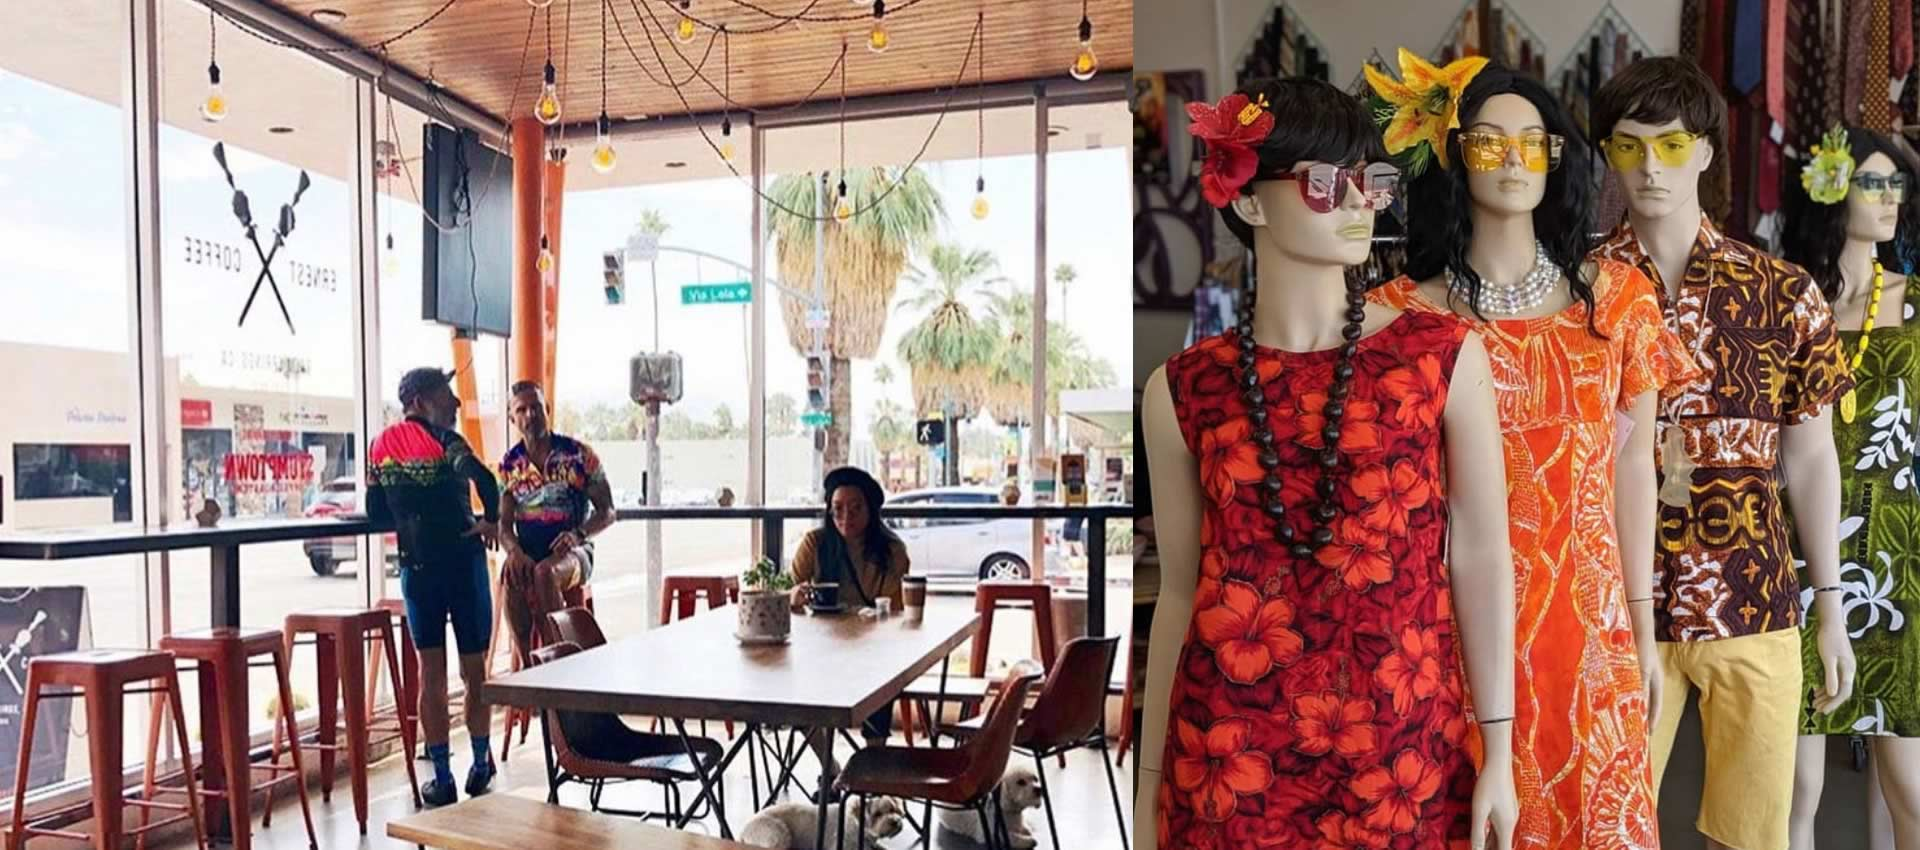 Trendy bright restaurant with windows boutique vintage clothing